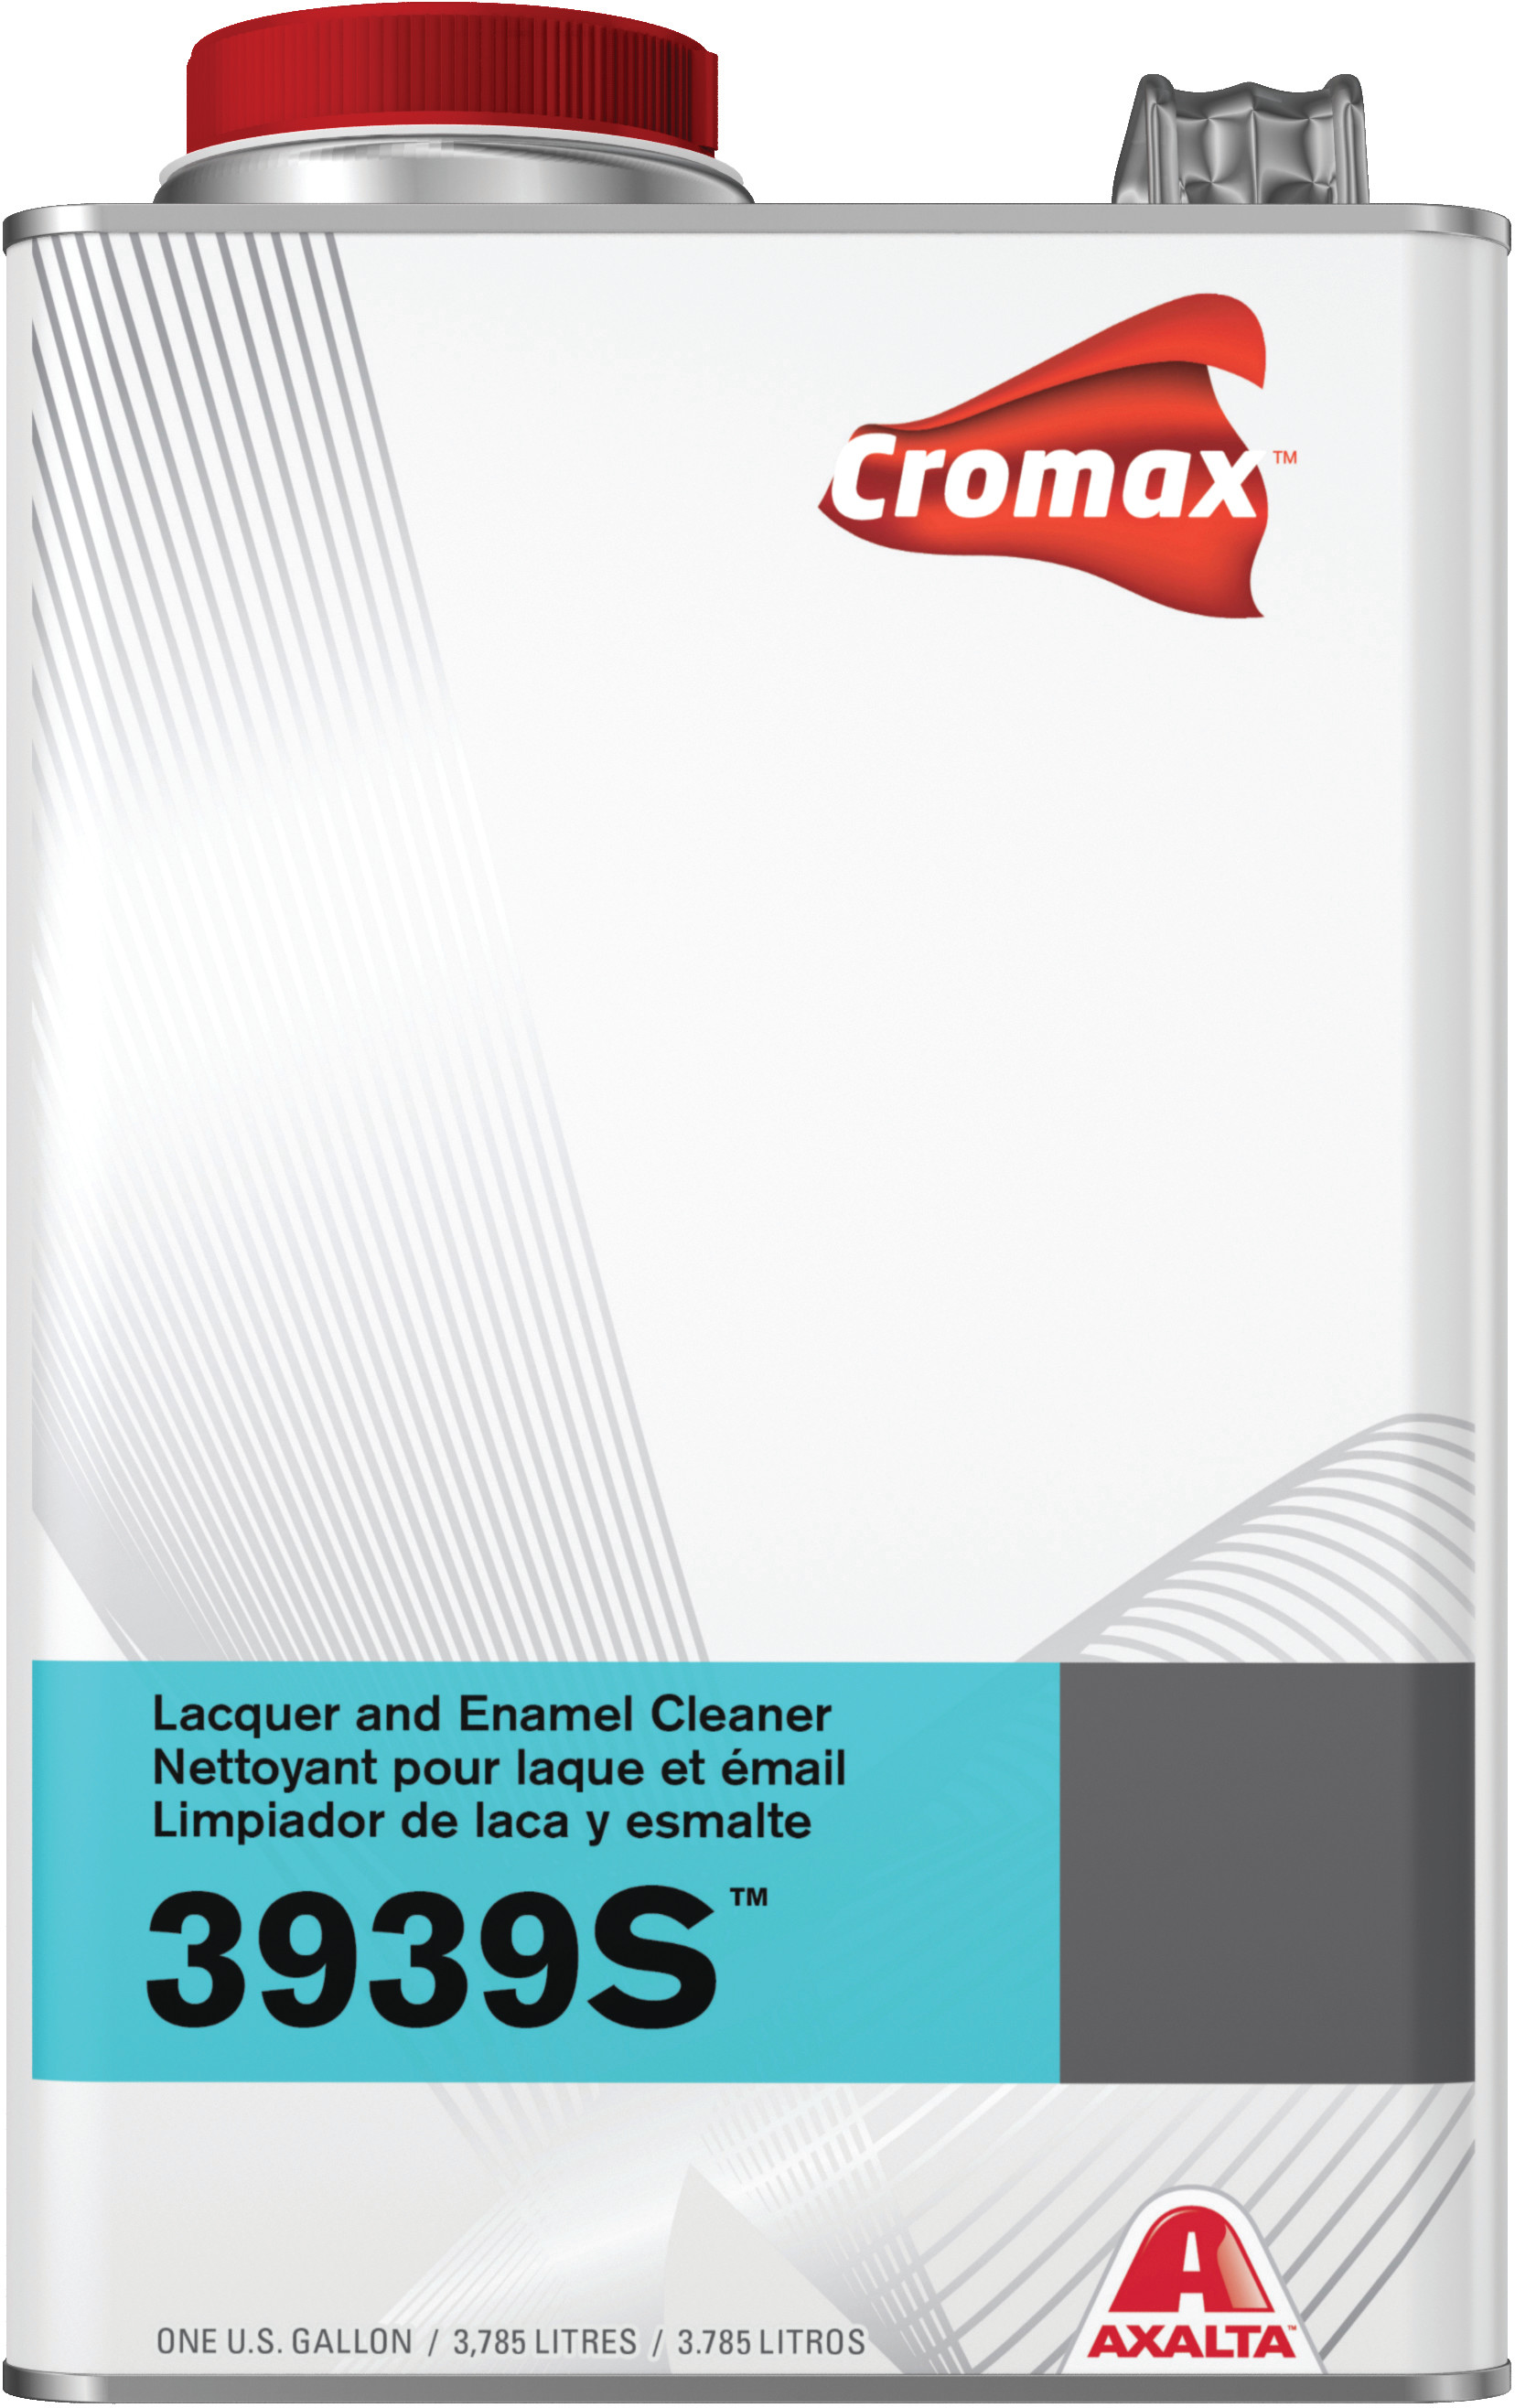 Dupont Lacquer And Enamel Cleaner 3939s Gallon